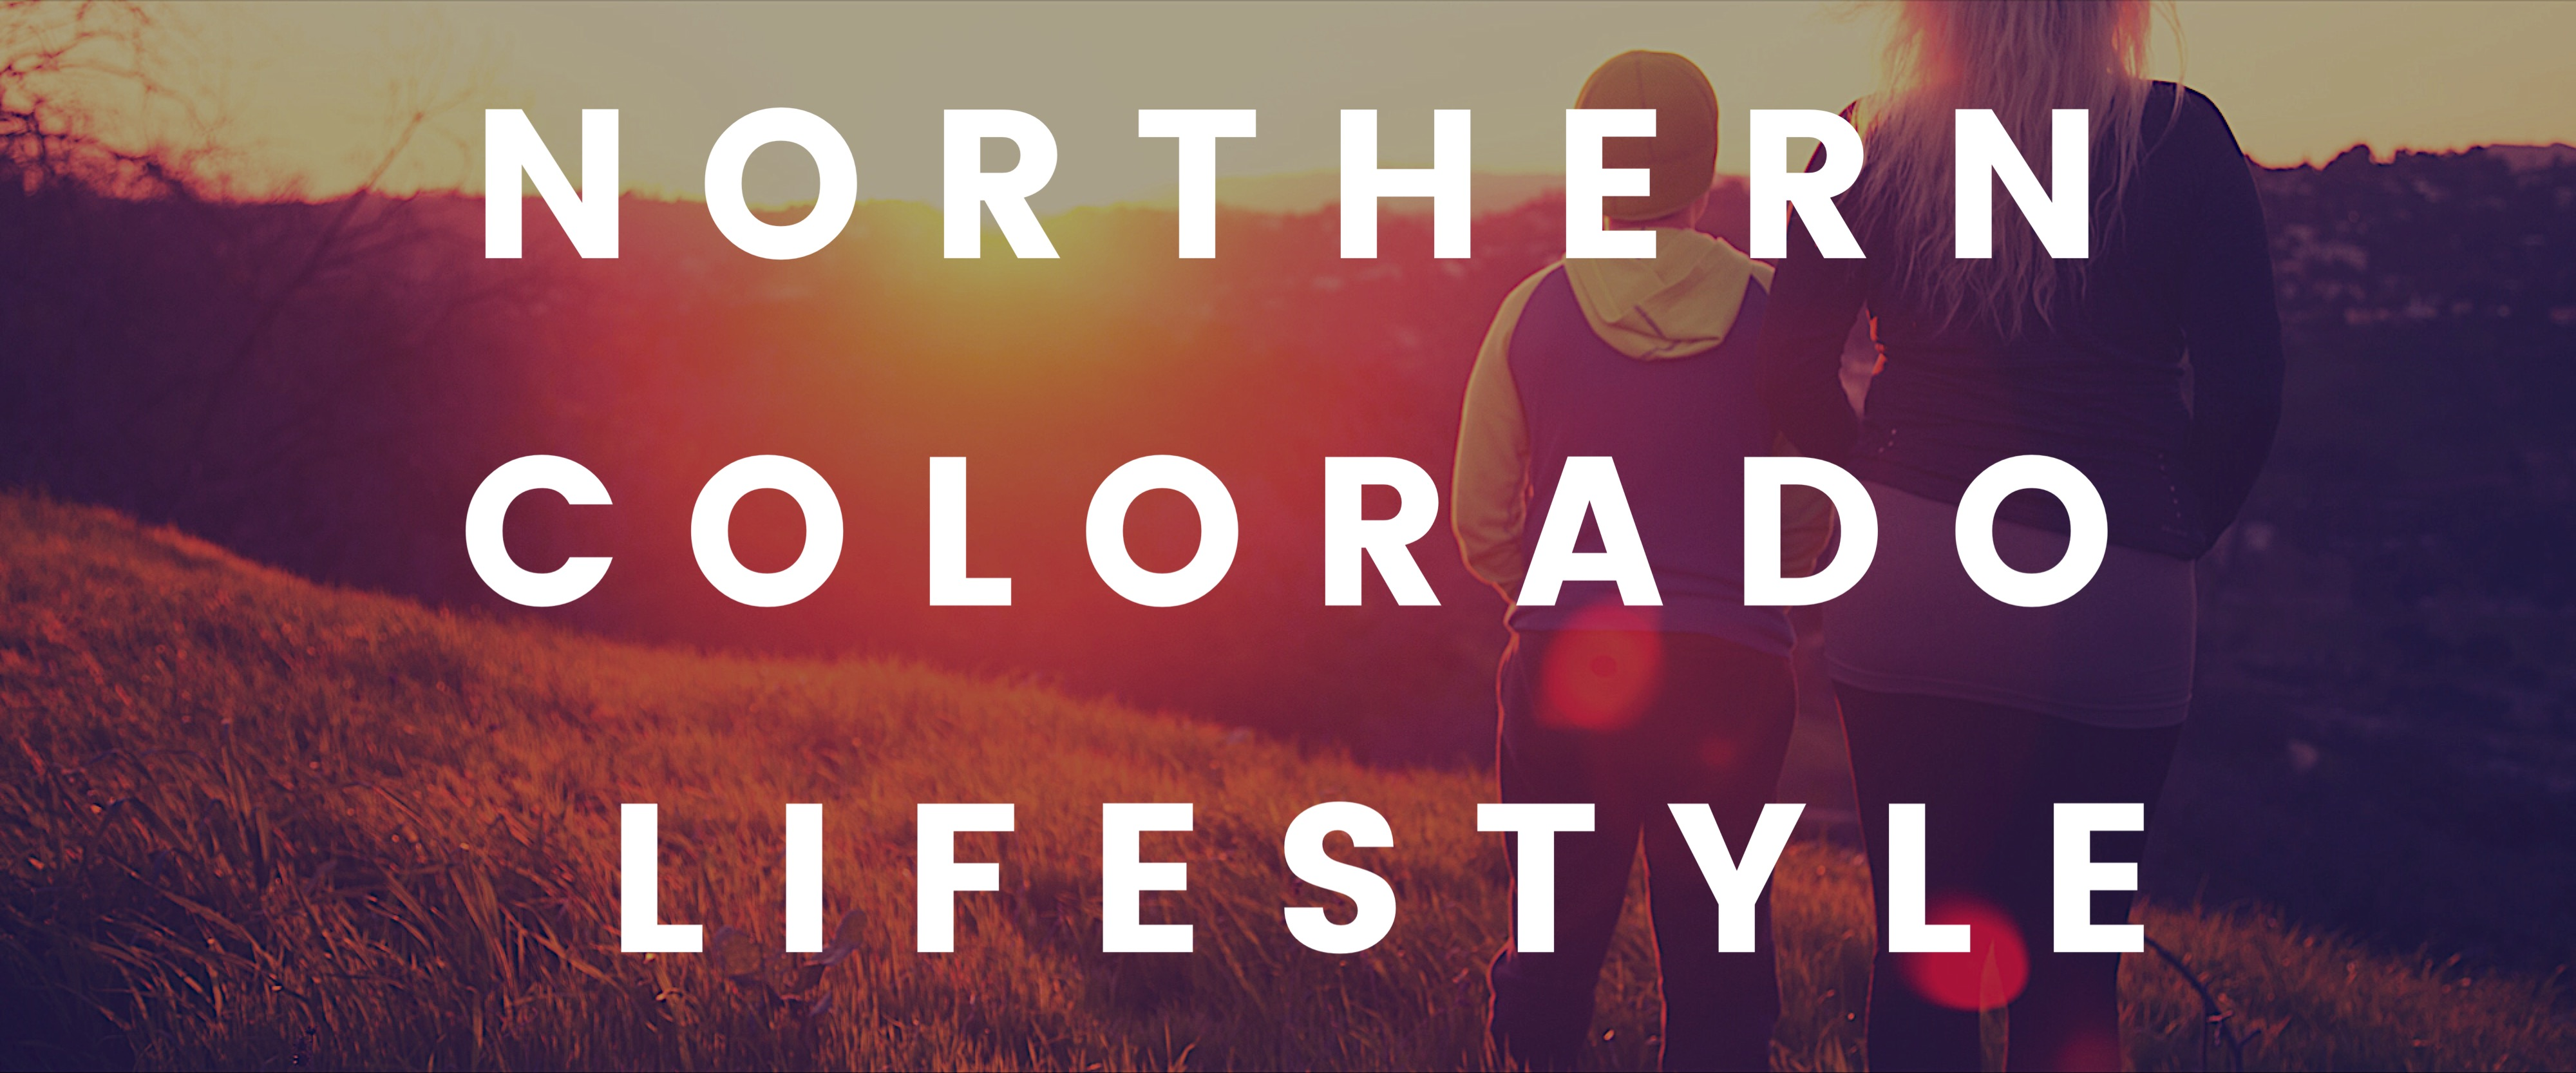 Lifestyle in Northern Colorado- Fort Collins, Greeley, Loveland, Timnath, Severance, Windsor, Laporte, Wellington, Livermore, Red Feather Lakes,